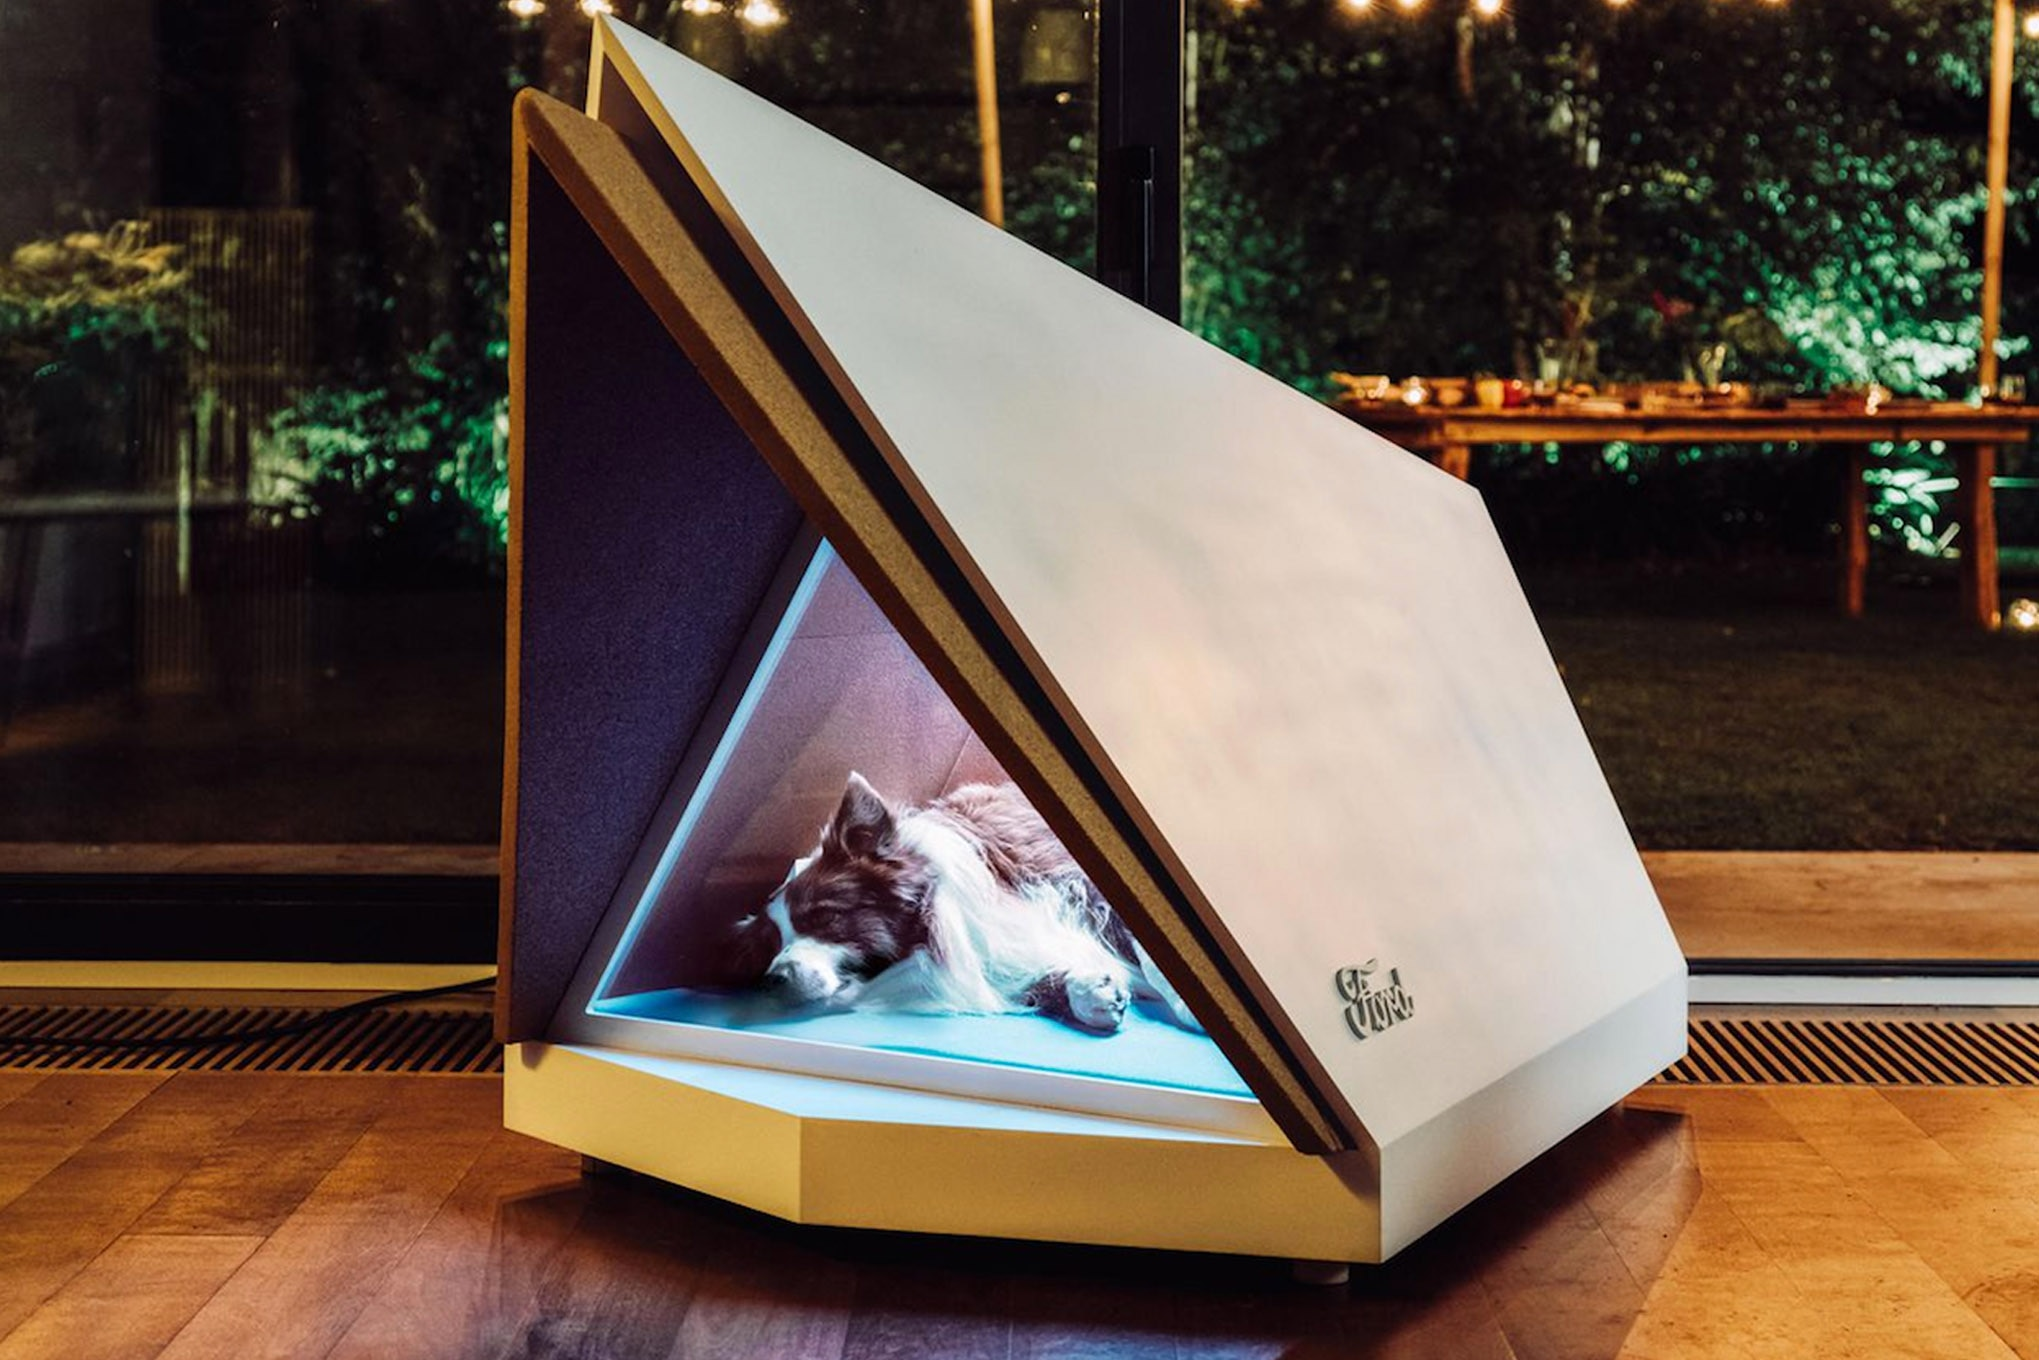 009 auto news four wheeler ford noise cancelling dog kennel